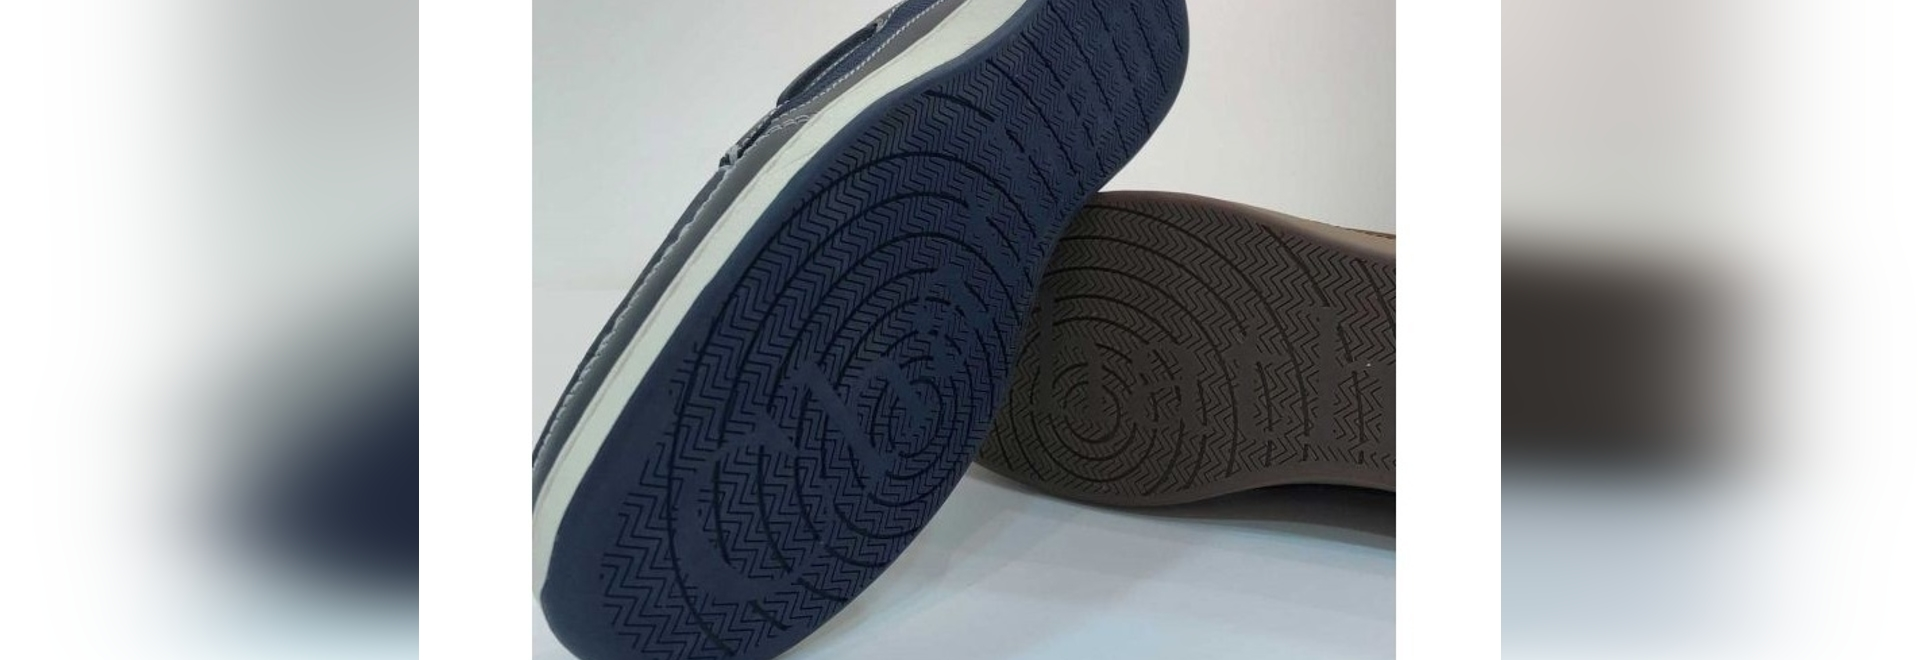 The new sole on Chatham's Buton G2 boat shoe